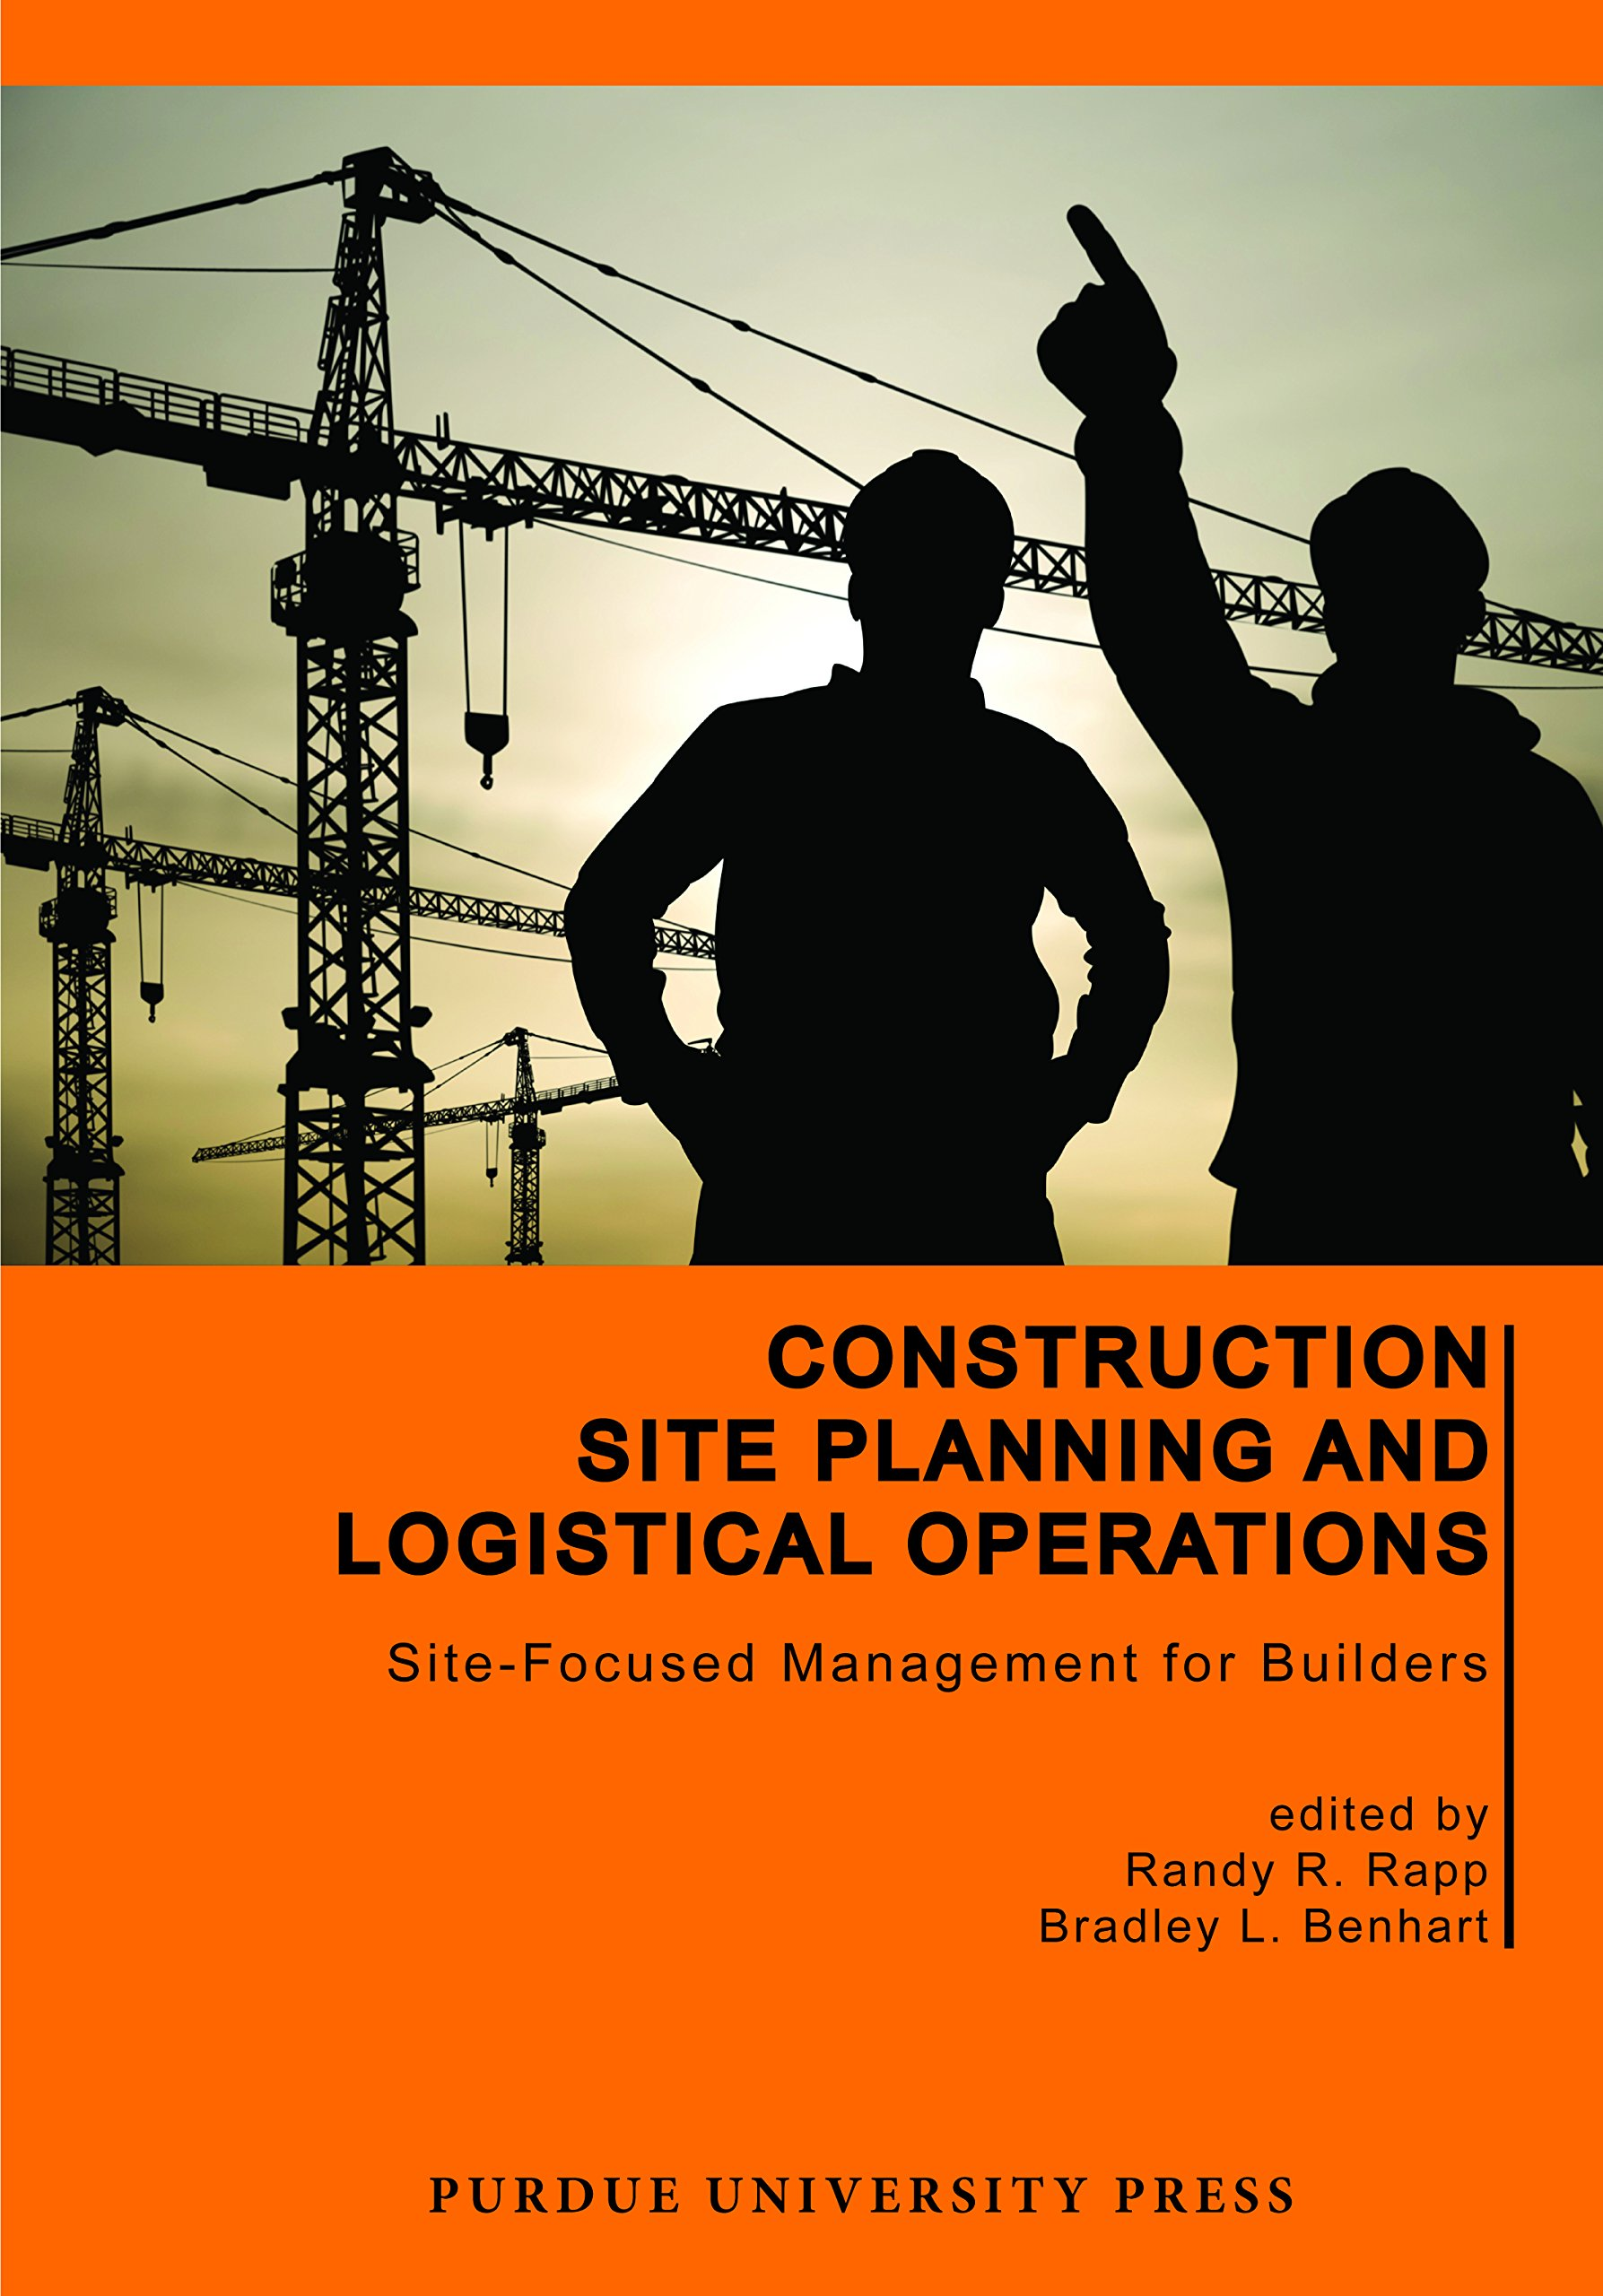 Download Construction Site Planning and Logistical Operations: Site-Focused Management for Builders (Central European Studies) pdf